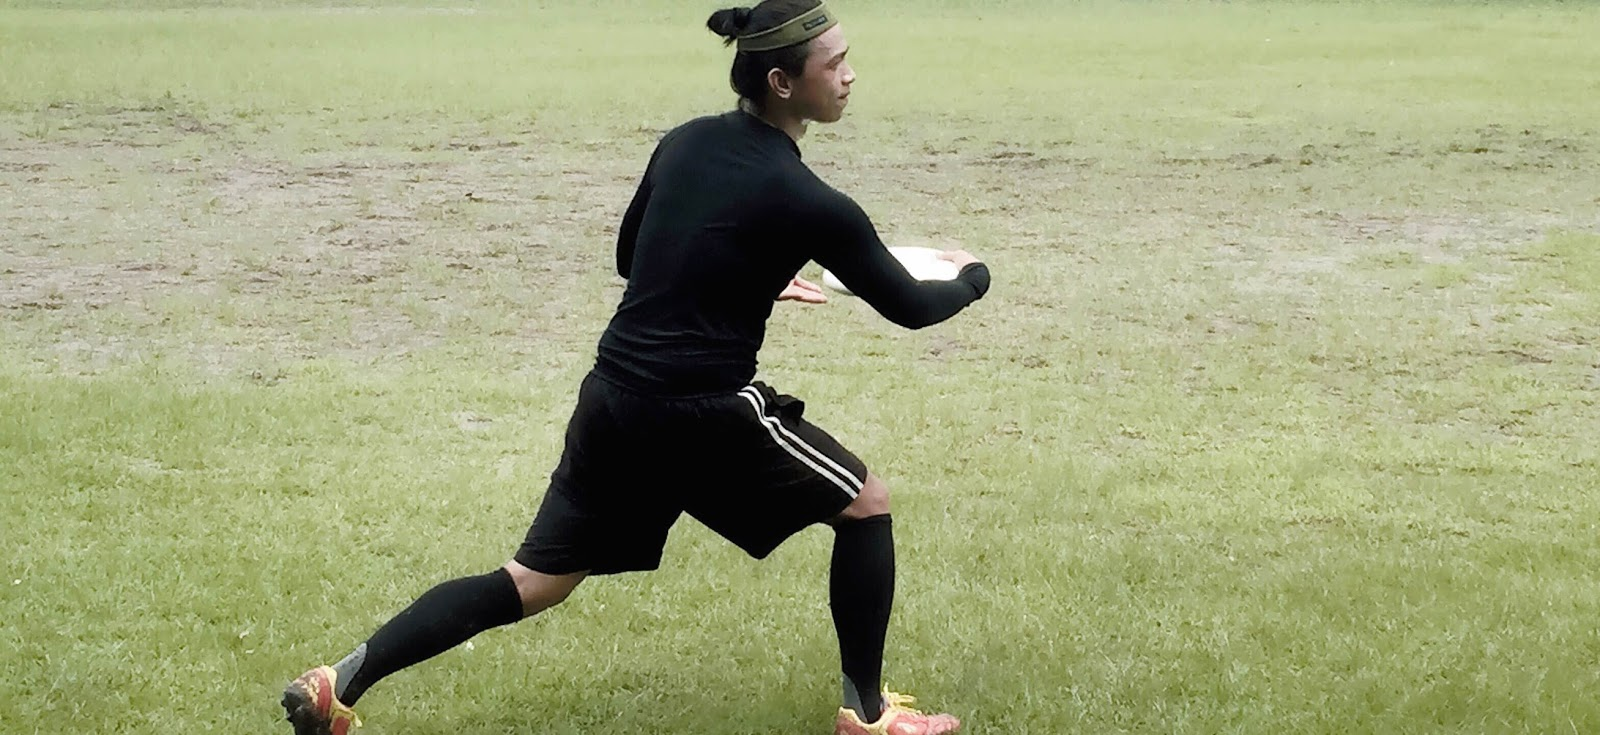 Ultimate Frisbee Manila Philippines, Sweathawg headband